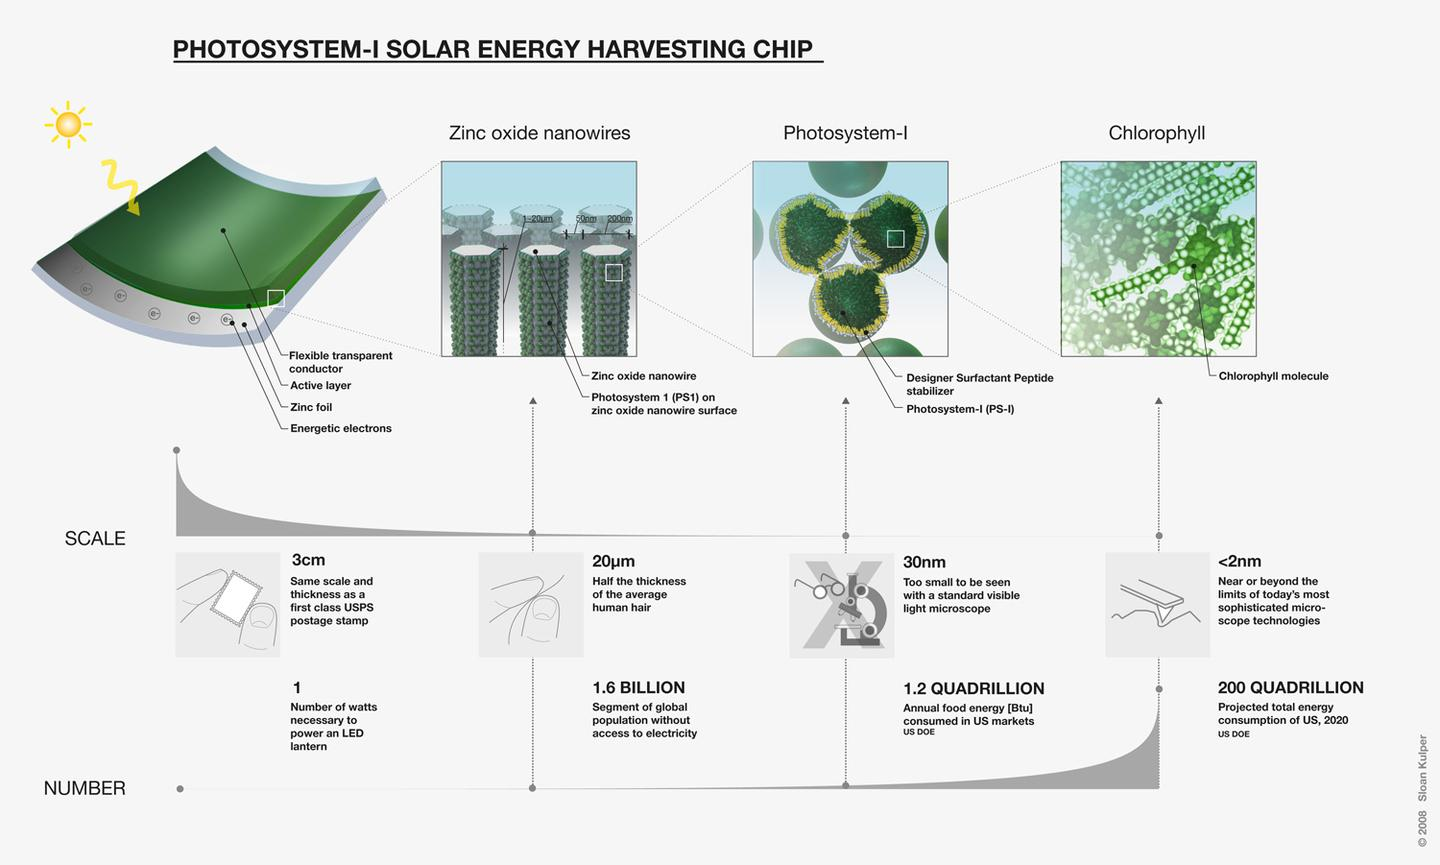 Schematic of MIT's Photosystem-I solar energy harvesting chip